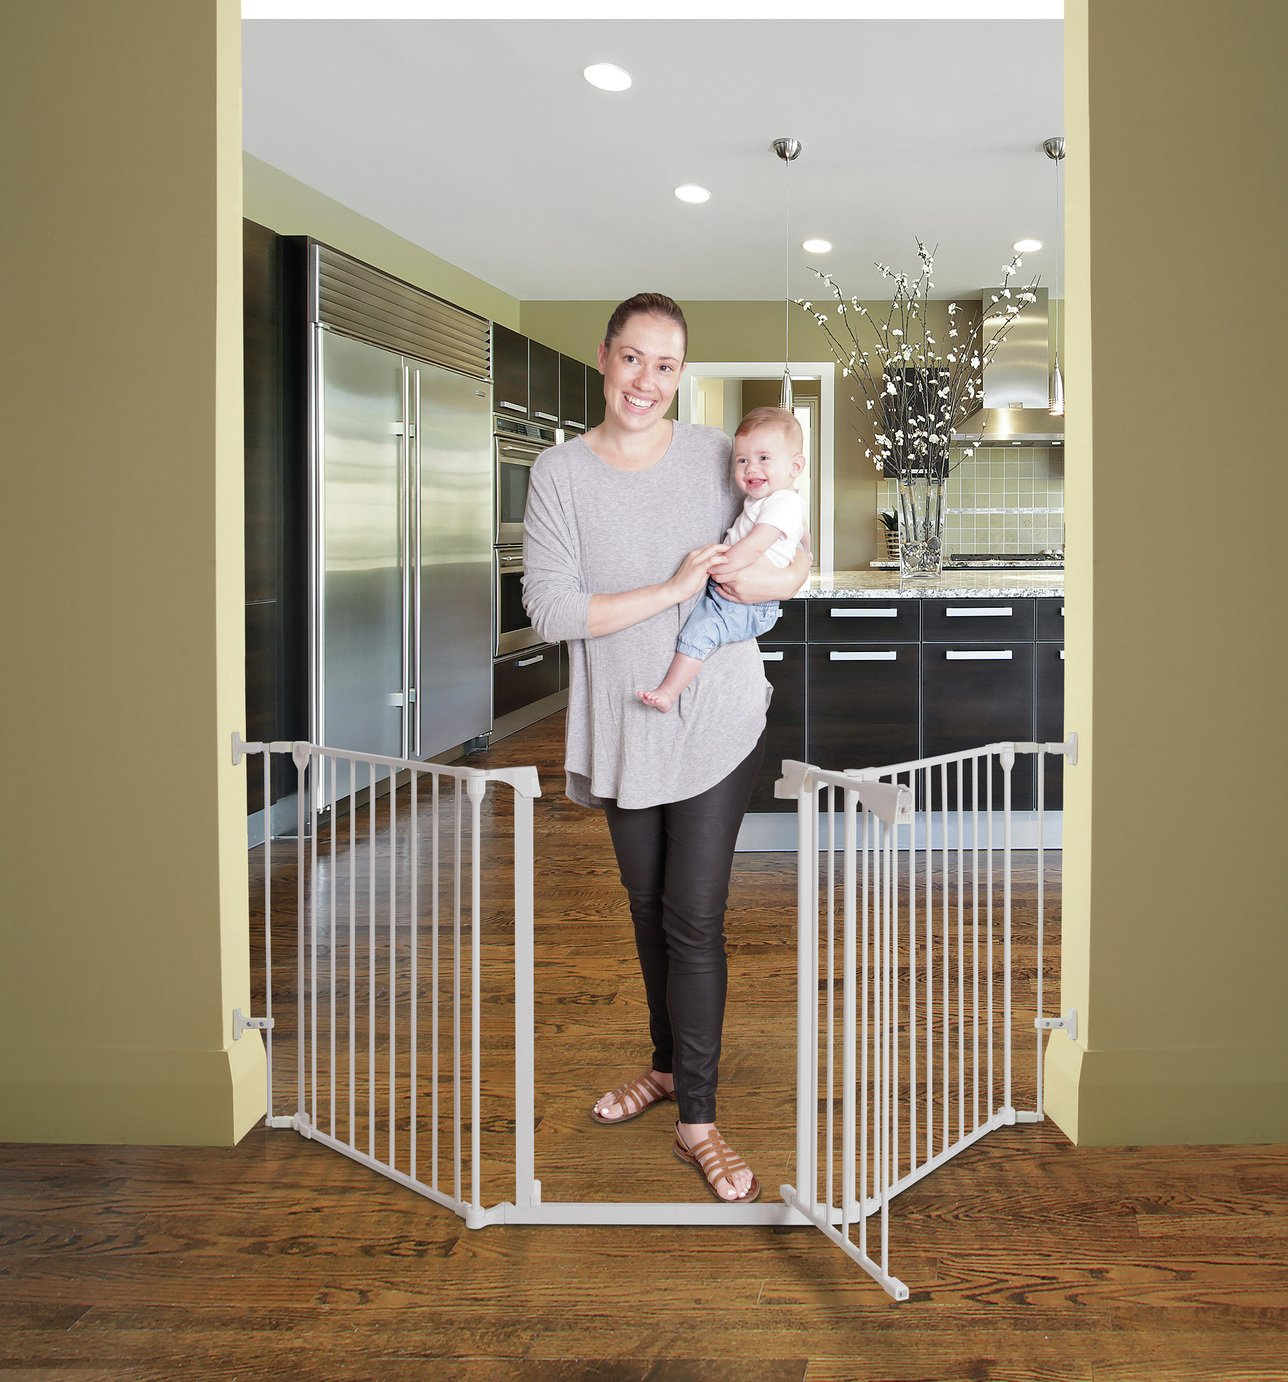 Dreambaby Newport 3-Panel Metal Adapta Barrier/Gate - White